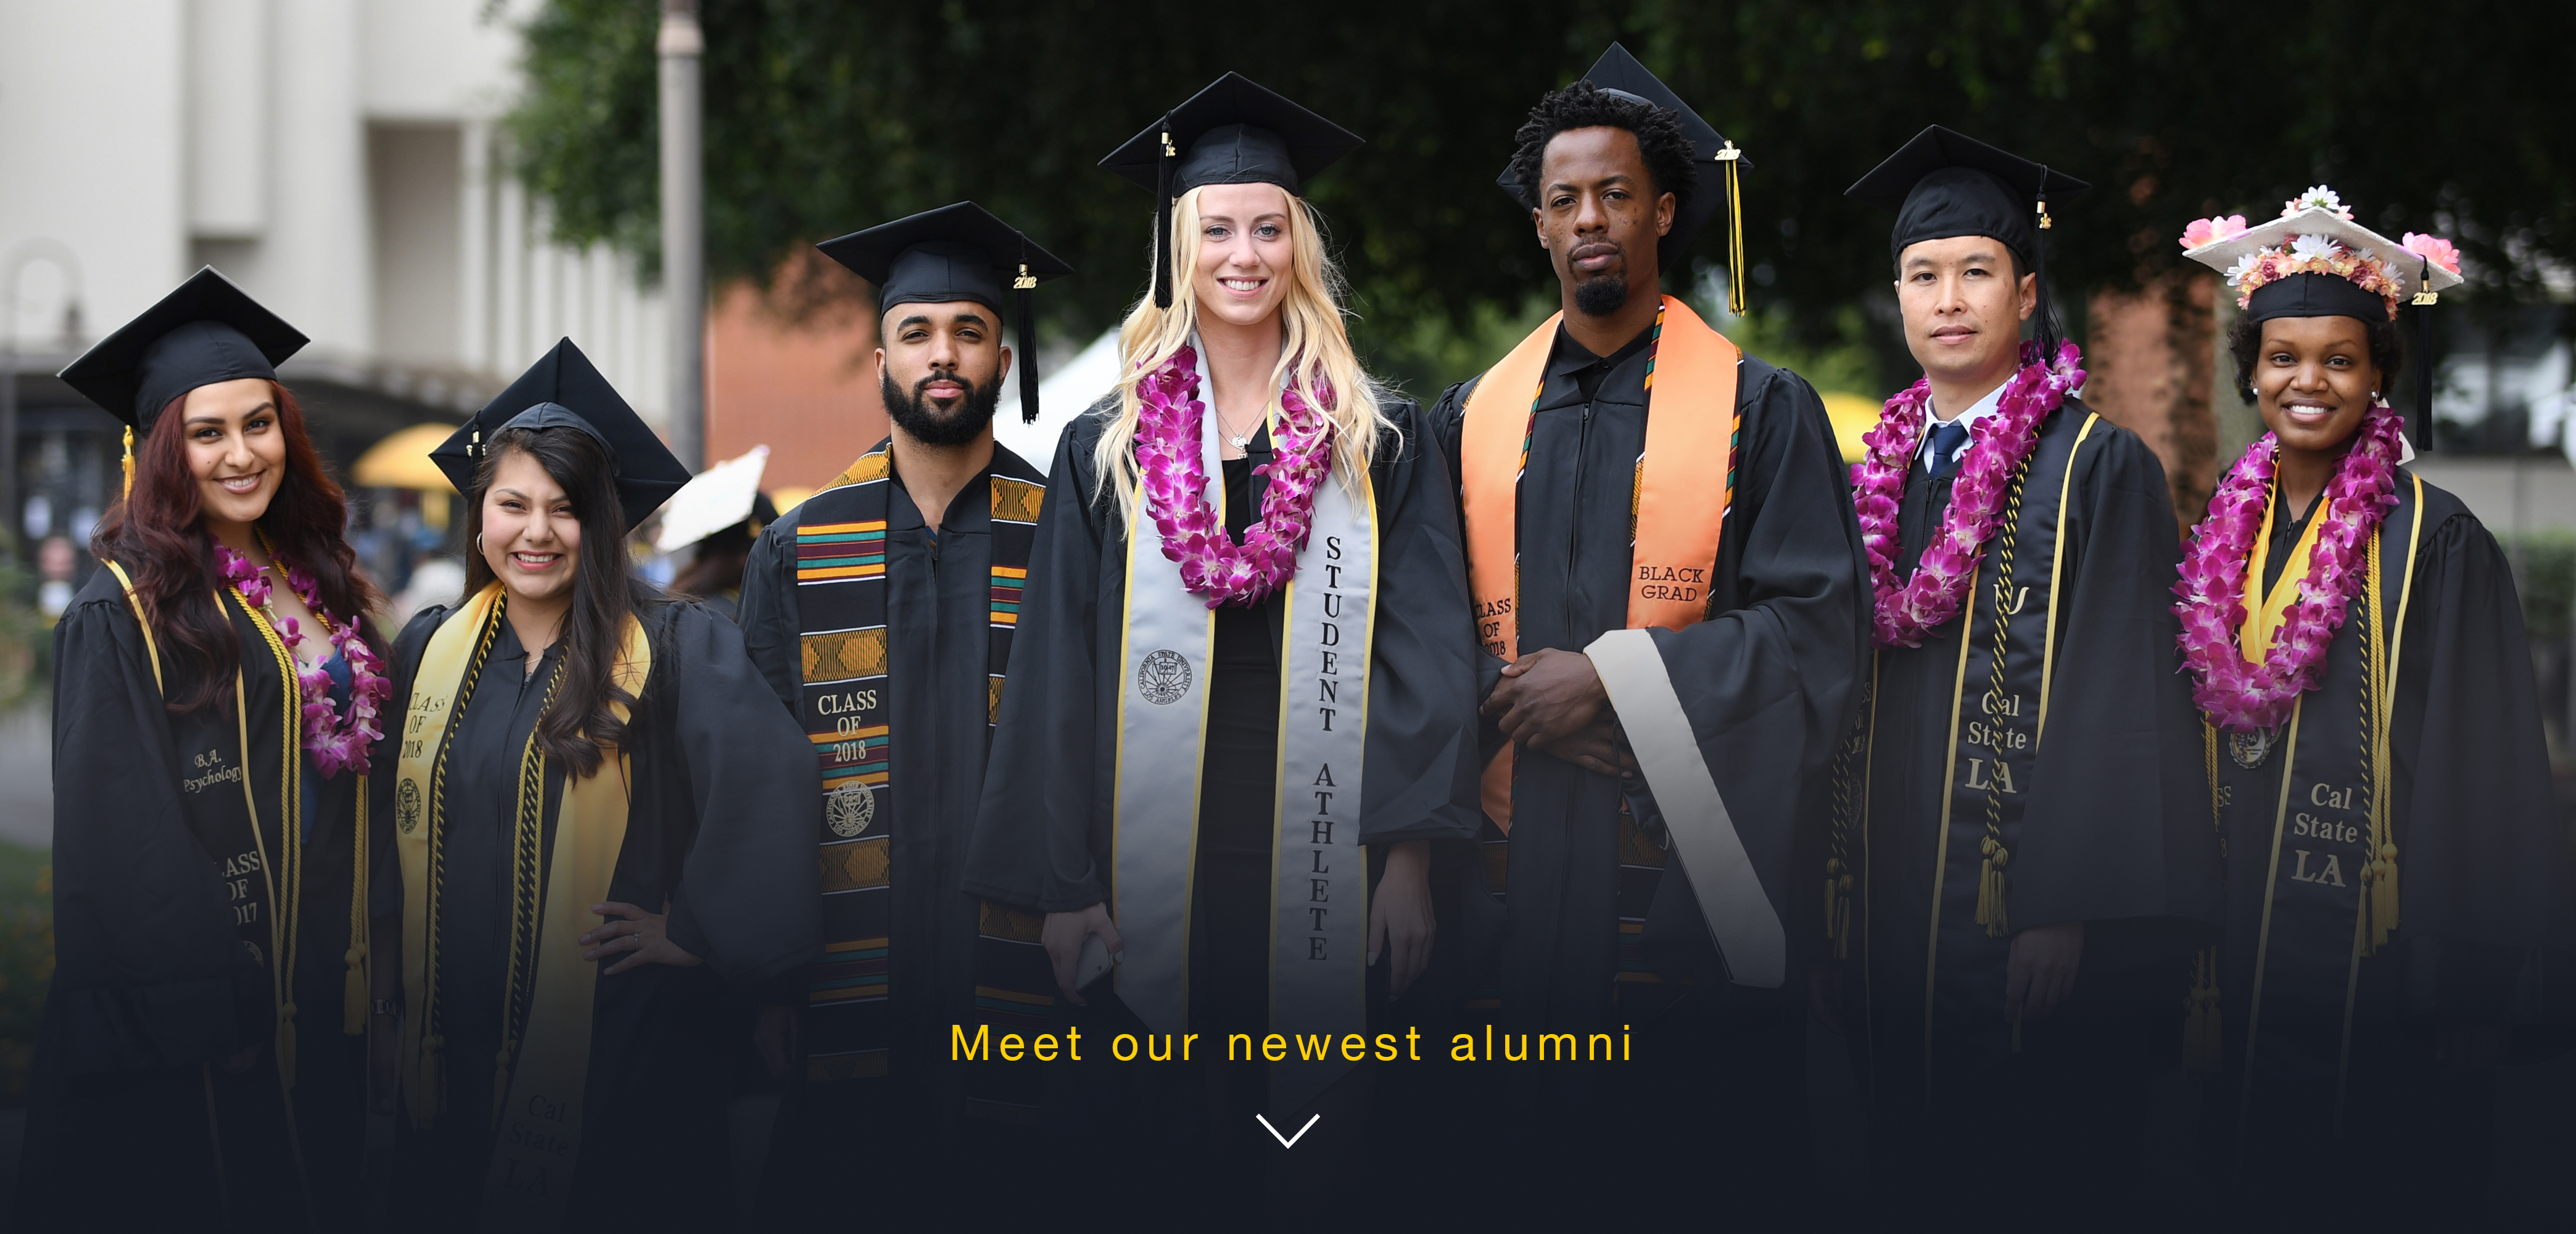 Explore, connect, and engage with the University and the alumni community through the Alumni Association